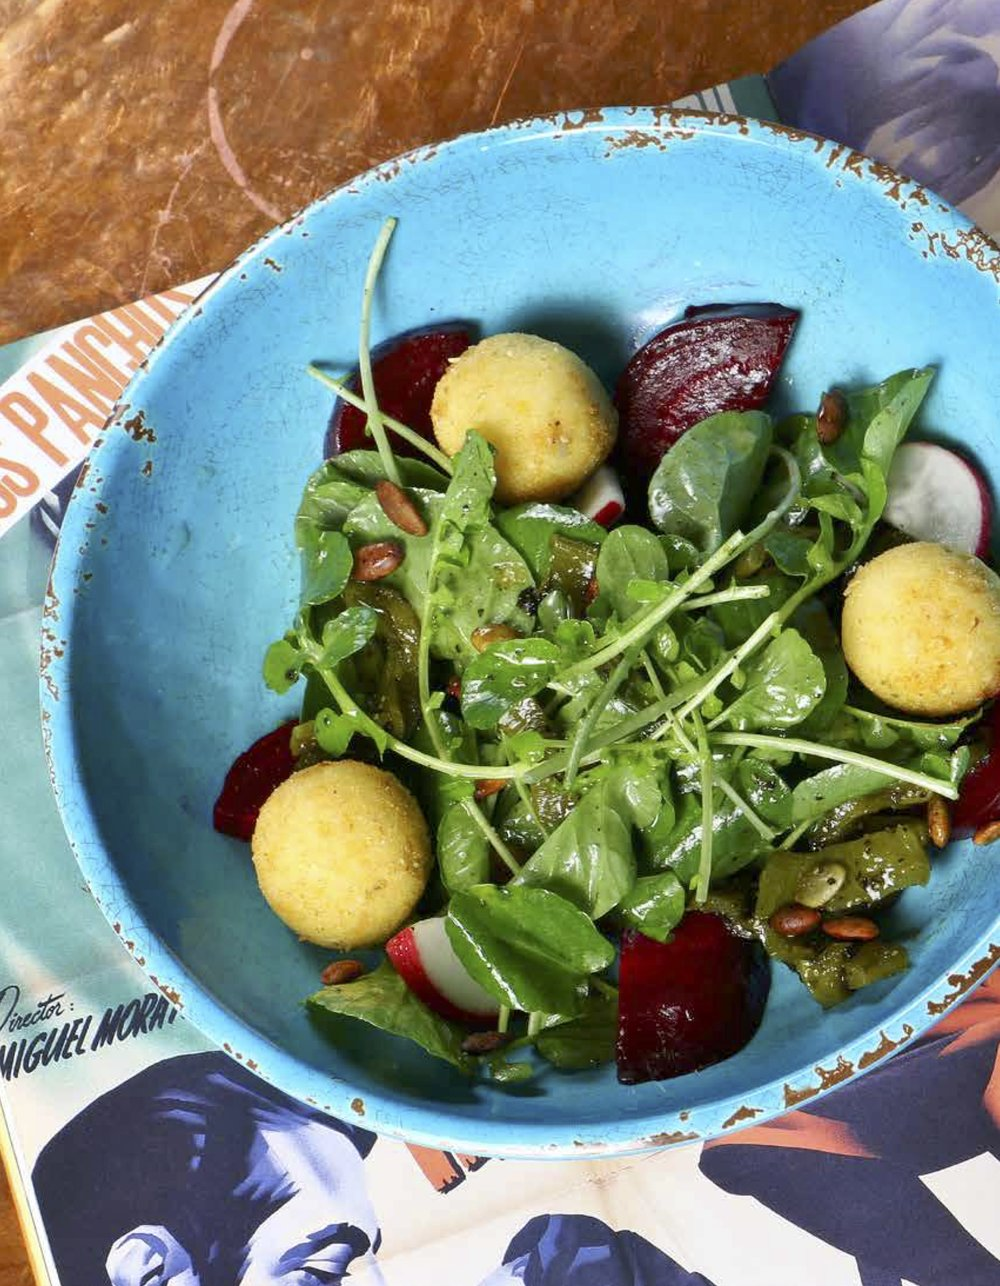 Roasted beet salad with watercress, crispy goat cheese, roasted chiles and agave vinaigrette